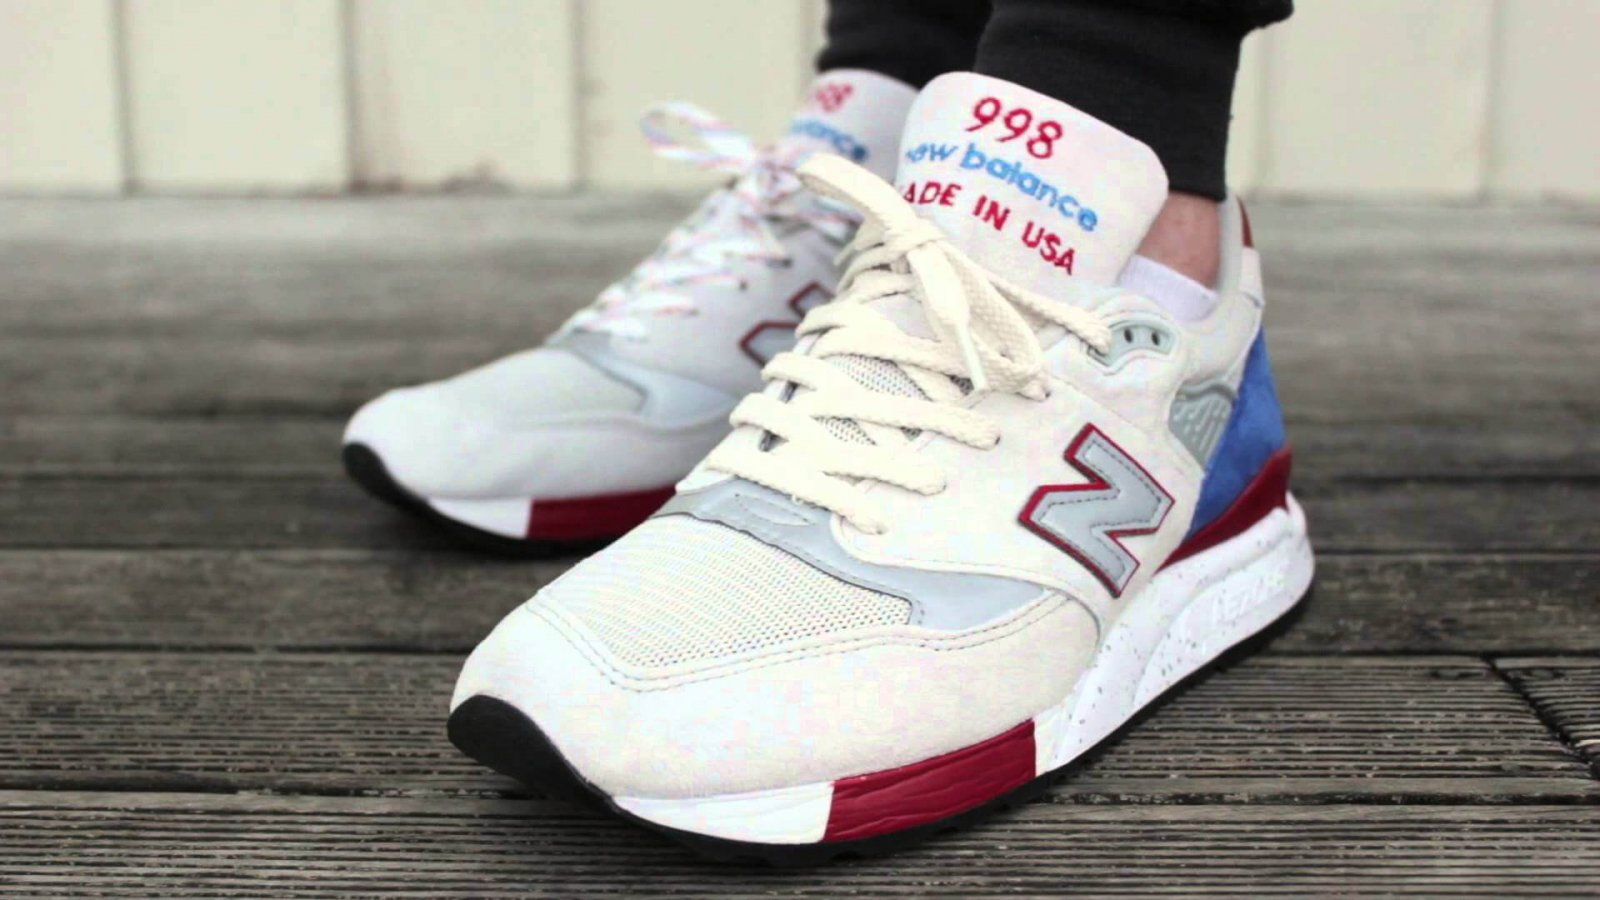 Кроссовки New Balance 998 Bt National Parks